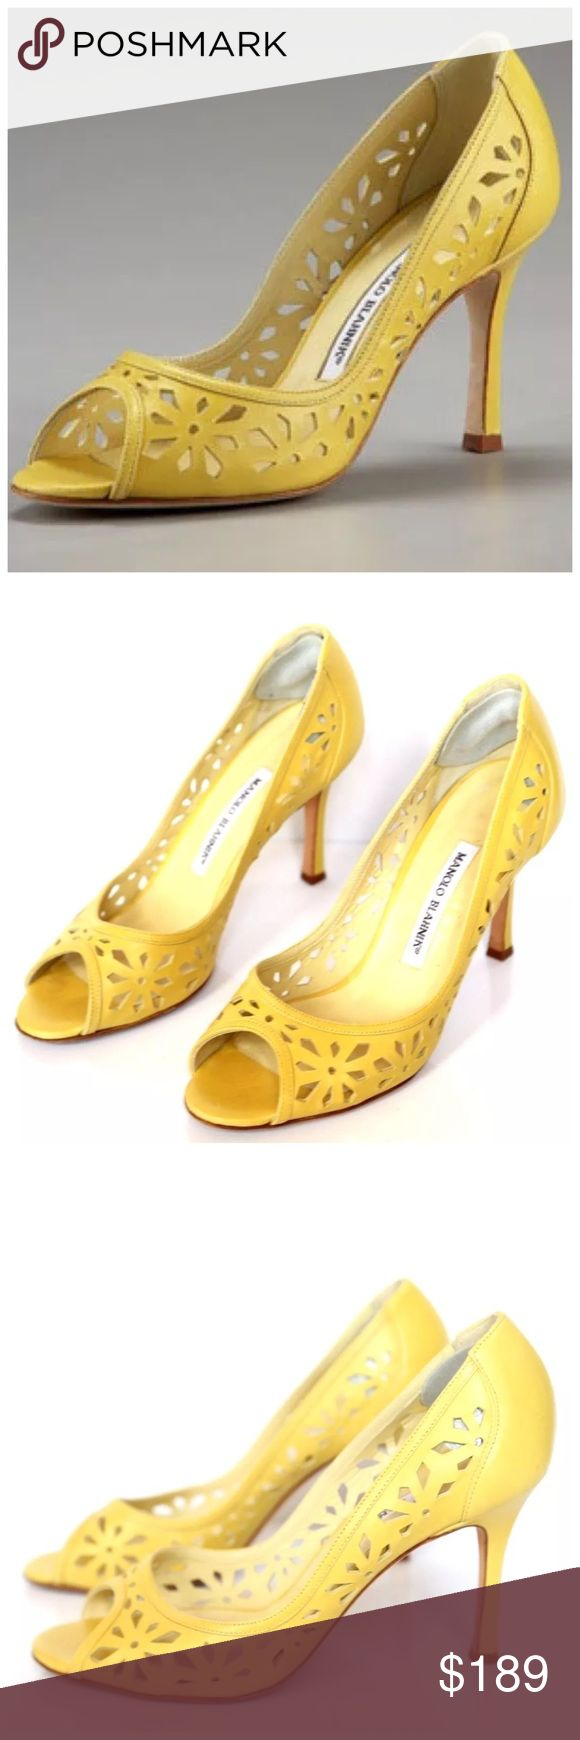 """Manolo Blahnik Yellow Laser Cut Shoes ‼️ PRICE FIRM ‼️ 10% DISCOUNT ON 2 OR MORE ITEMS FROM MY CLOSET ‼️ Manolo Blahnik Laser Cut Heels Size 38 Retail $895 Fabulous pair of shoes from renown designer Manolo Blahnik. These are absolutely gorgeous. I wore them once but they are just a bit too large on me. Great condition. Only worn once or twice. The measurement on the inside toe to heel is approximately 9.5"""". Width is 3"""". Heel is 3.5"""". Manolo Blahnik Shoes Heels"""